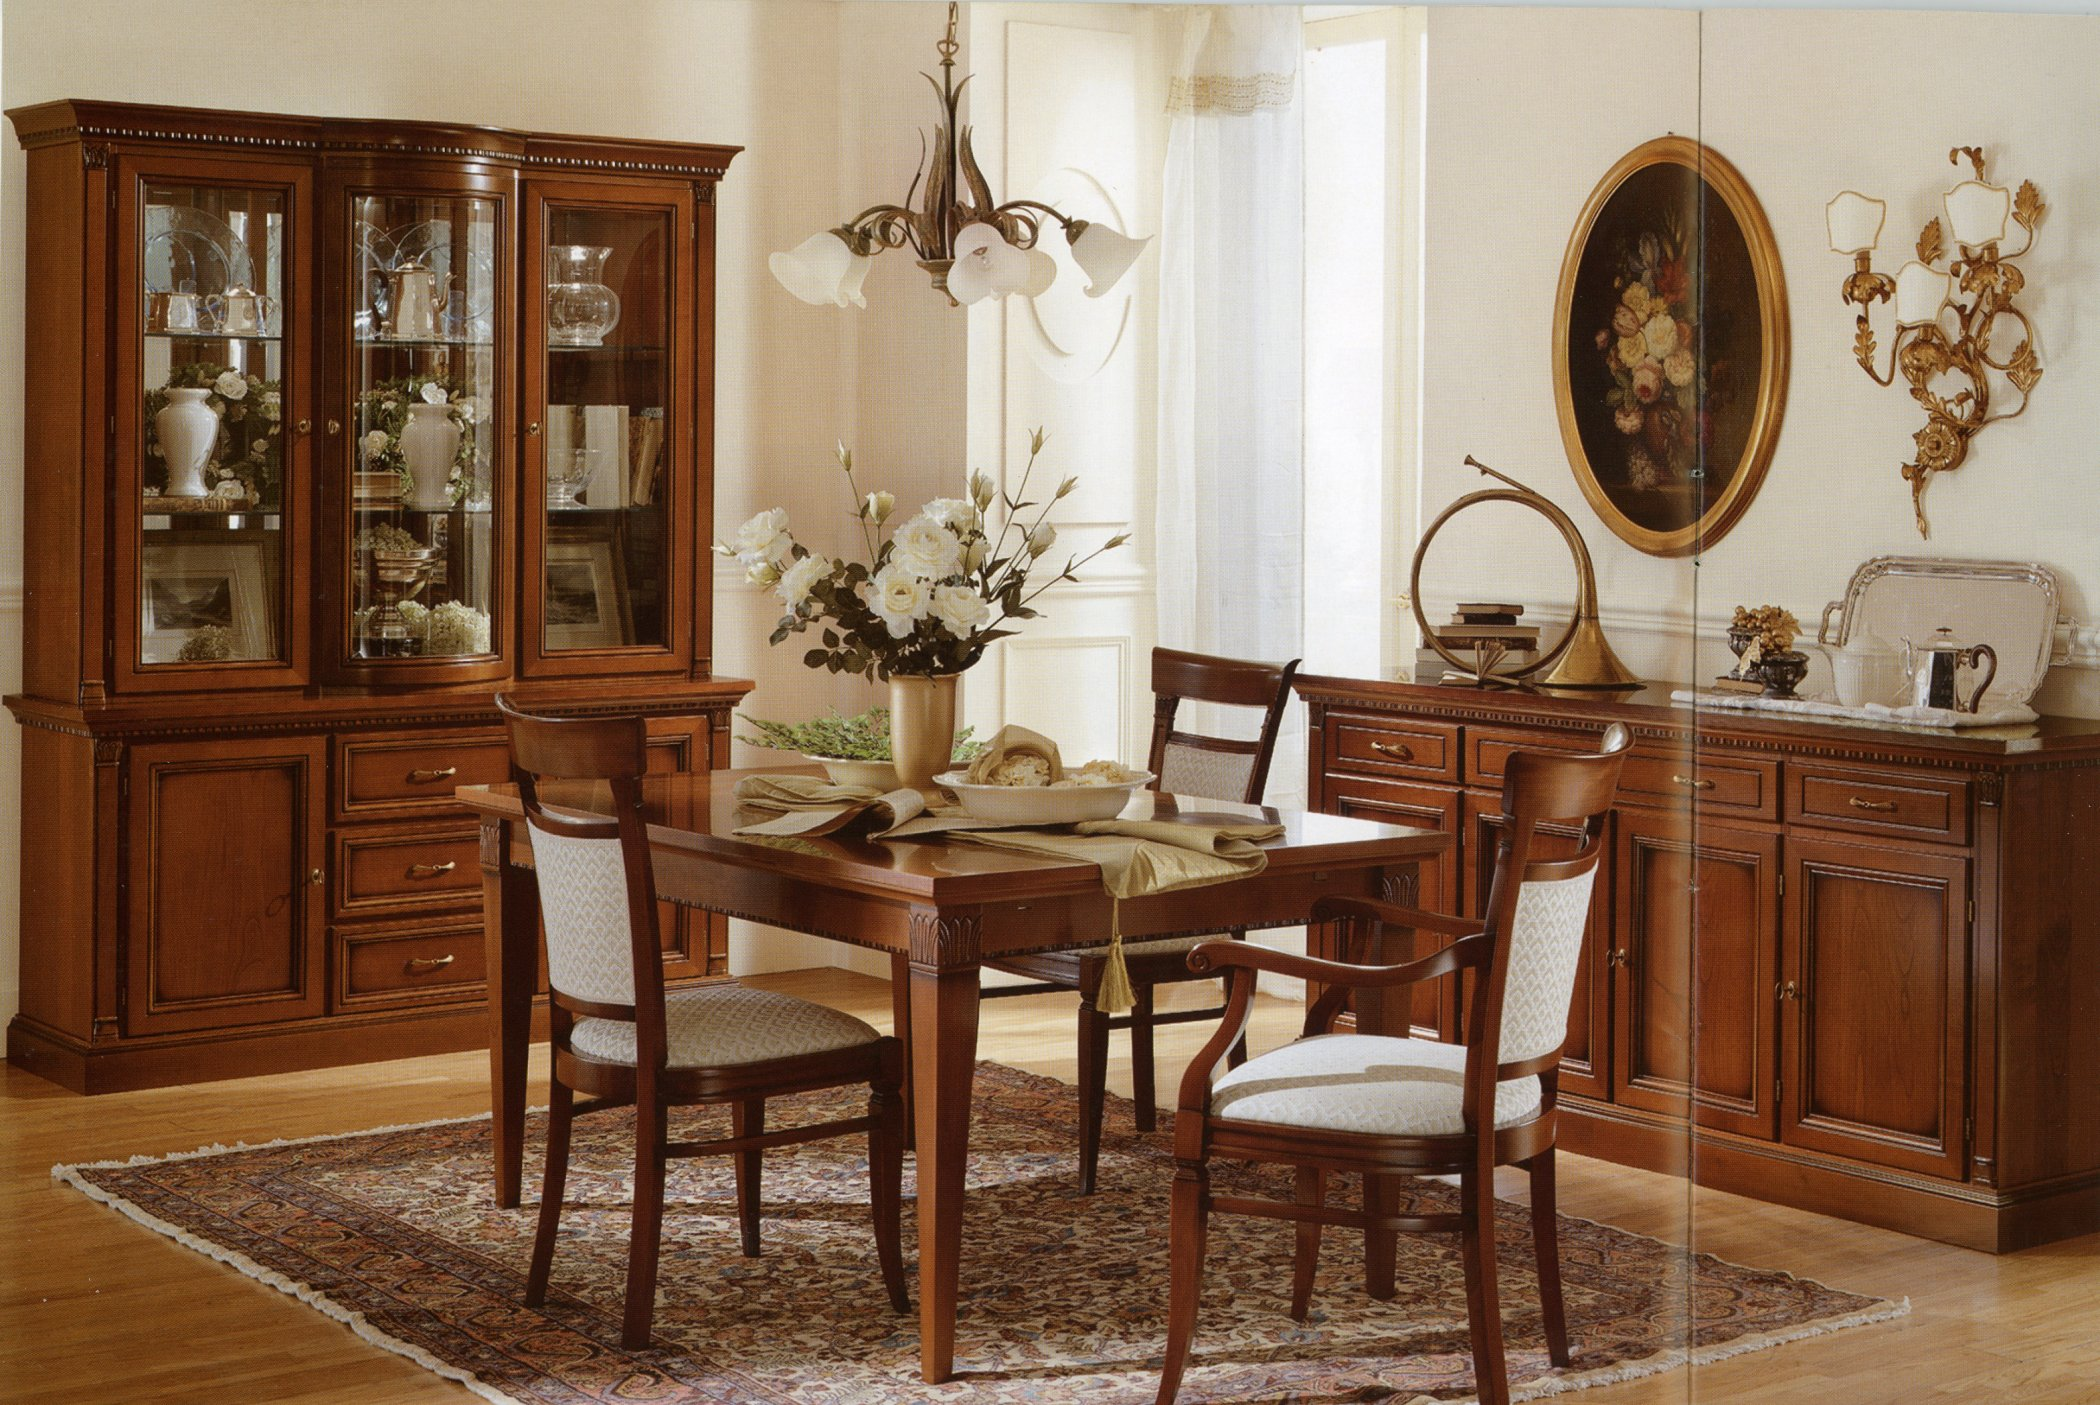 Kitchen dining table chairs photo - 3